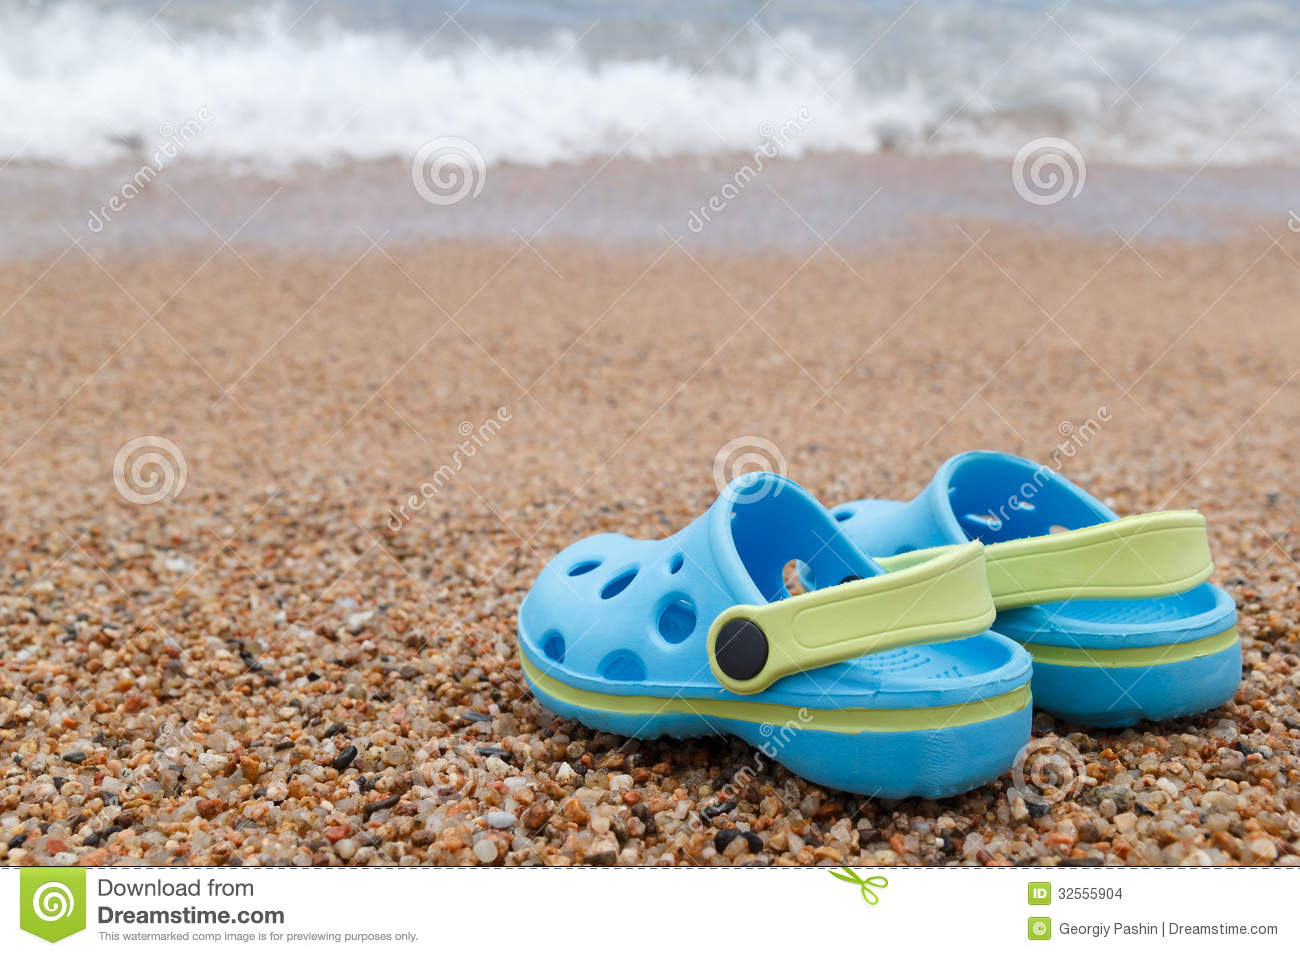 4bfa32793 Blue Sandals Slipper On The Sand Stock Photo - Image of travel ...